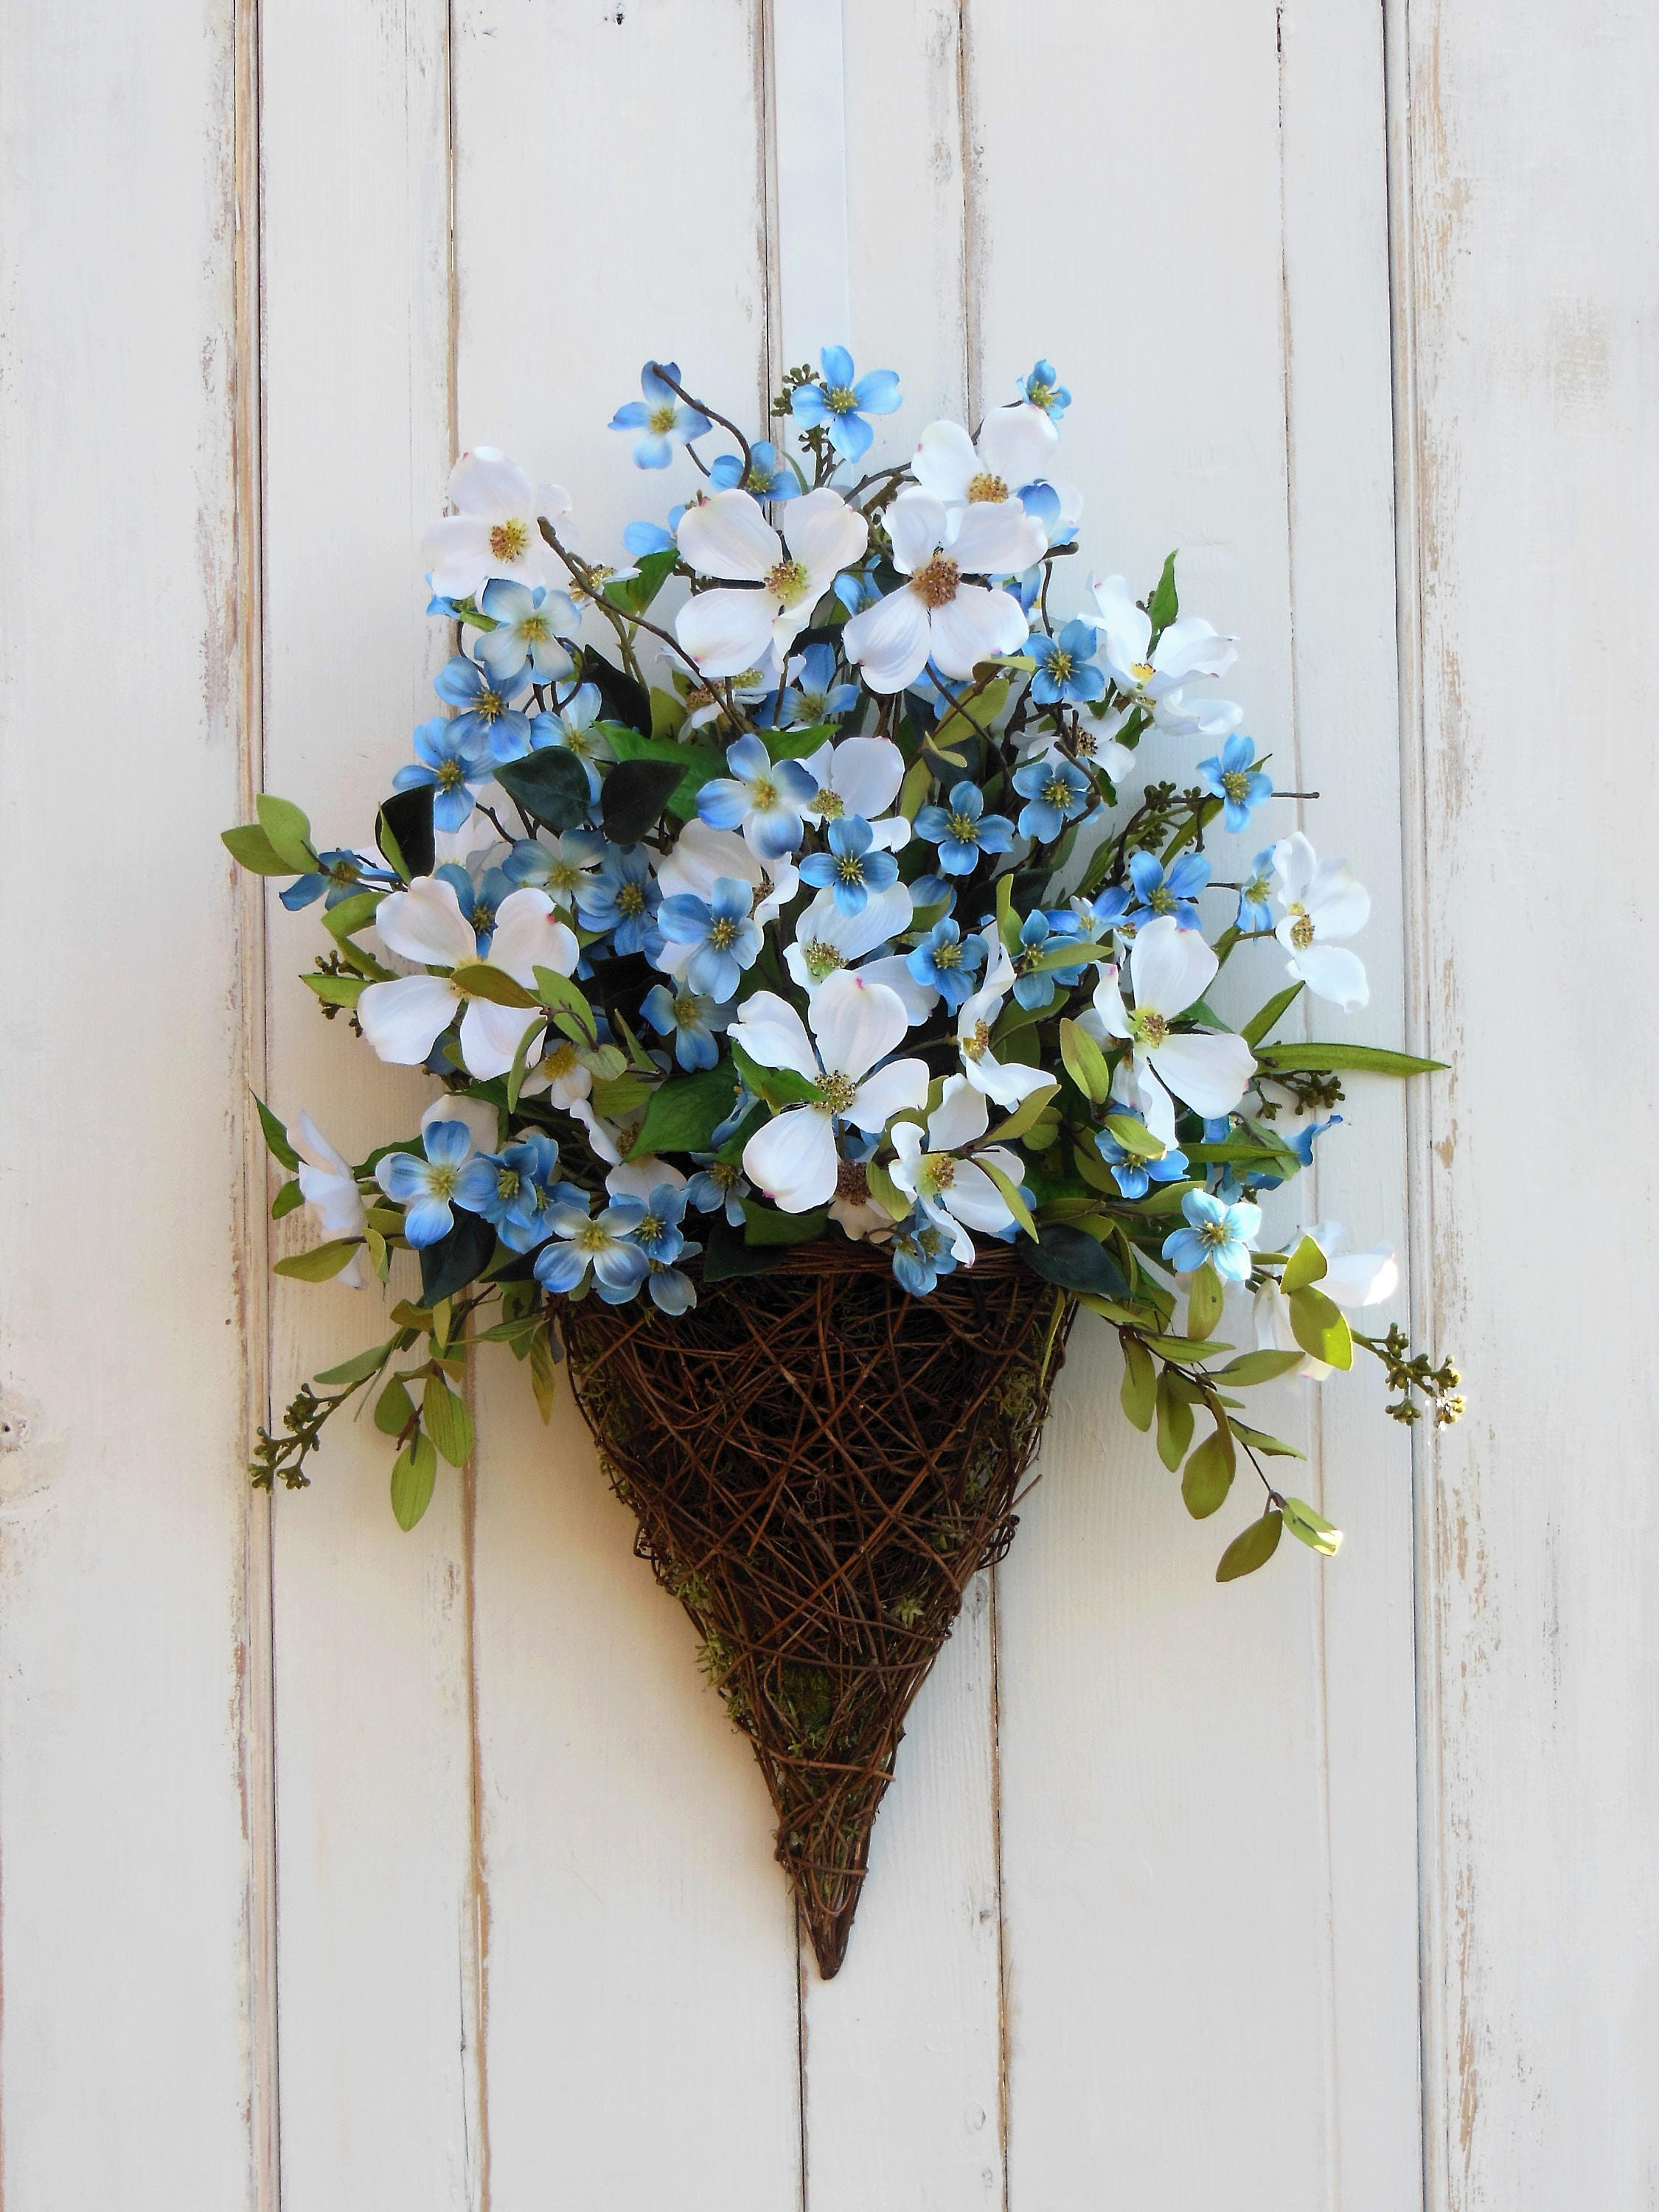 Front door wreath door basket blue flower wreath summer wreath front door wreath door basket blue flower wreath summer wreath all season wreath wreath for summer summer door basket everyday wreath izmirmasajfo